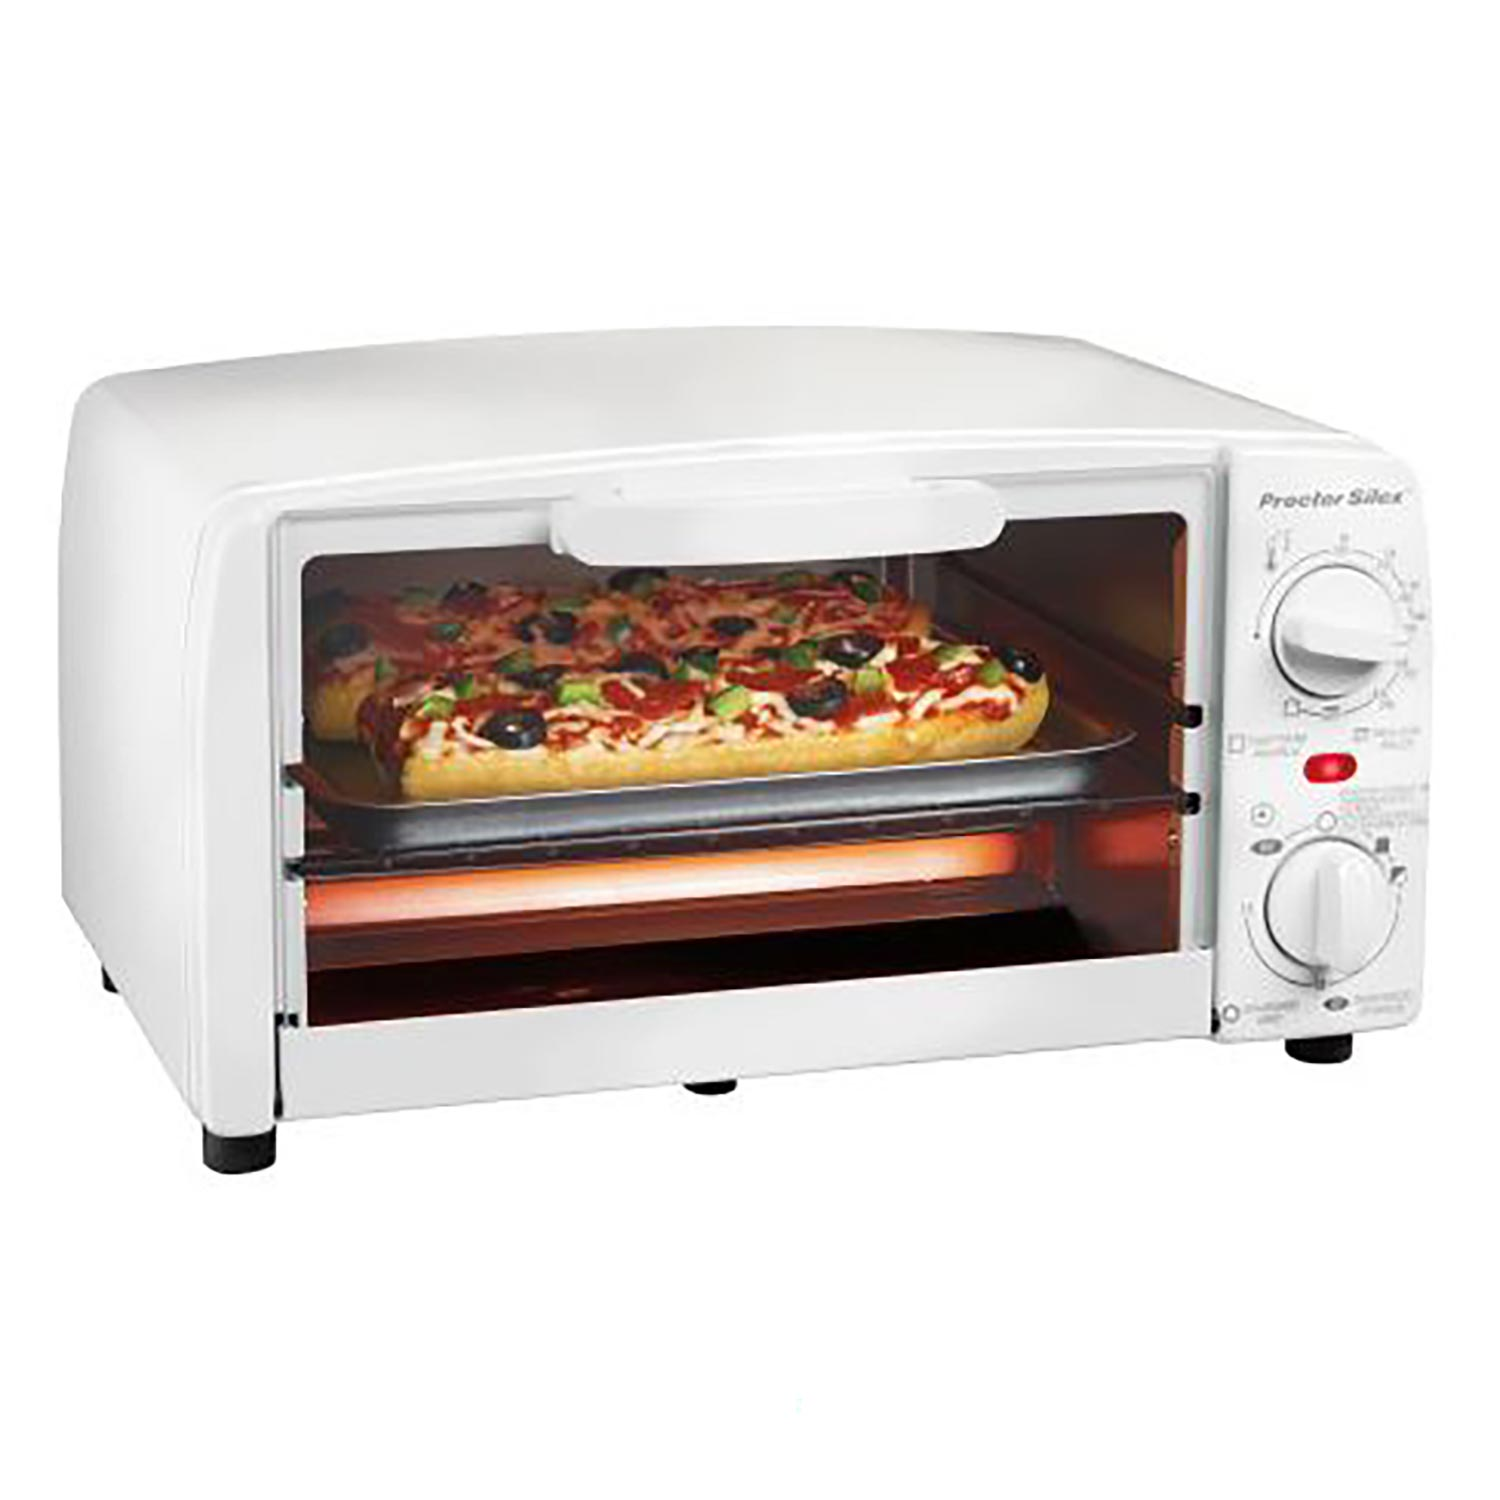 Toaster Oven Broiler (white)-31116R Small Size